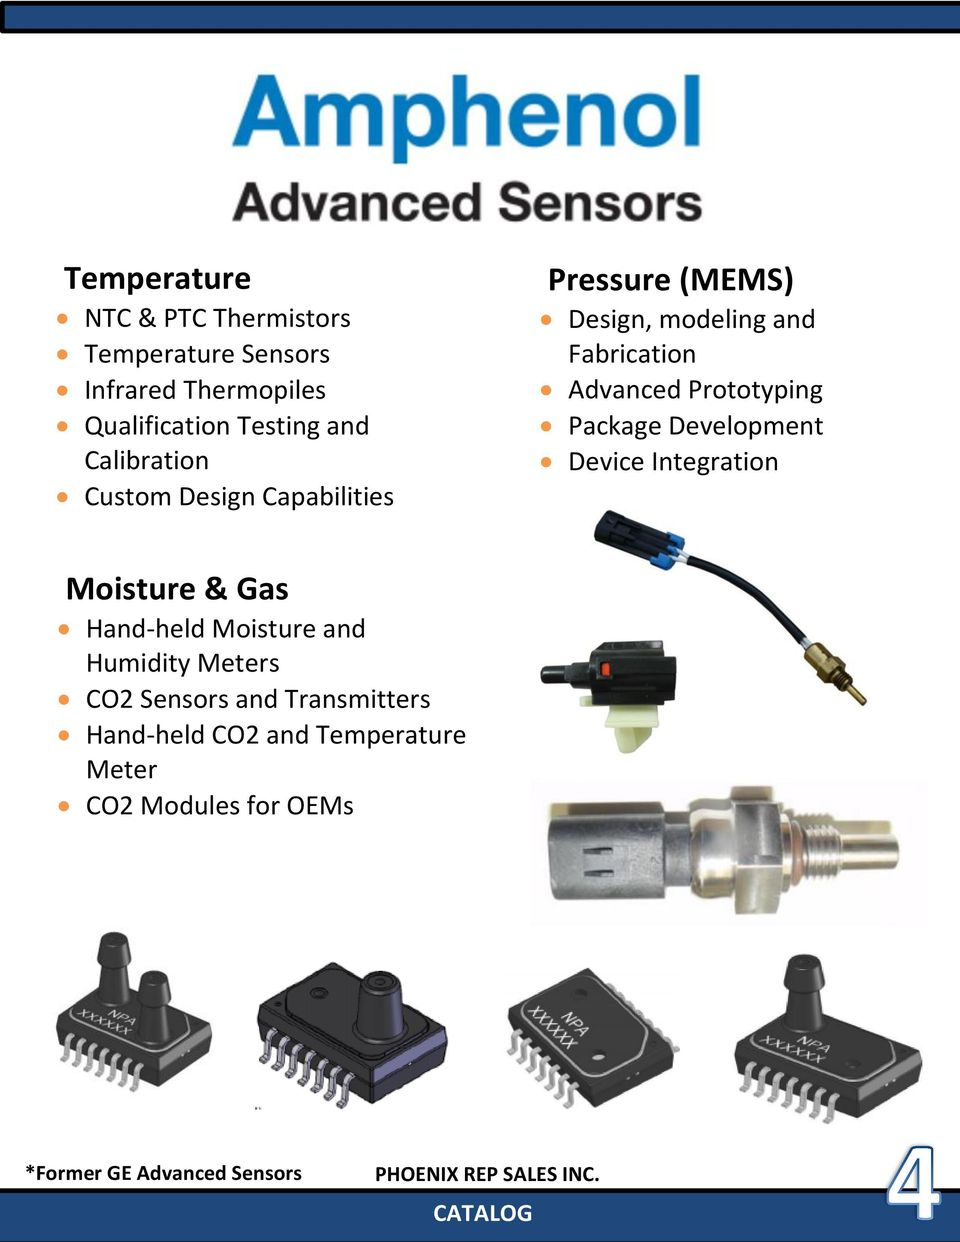 Contacts Tapalpa 2 Col Vallarta Poniente Cp Guadalajara Temperature Controller From Mtm Scientific Inc Prototyping Package Development Device Integration Moisture Gas Hand Held And Humidity